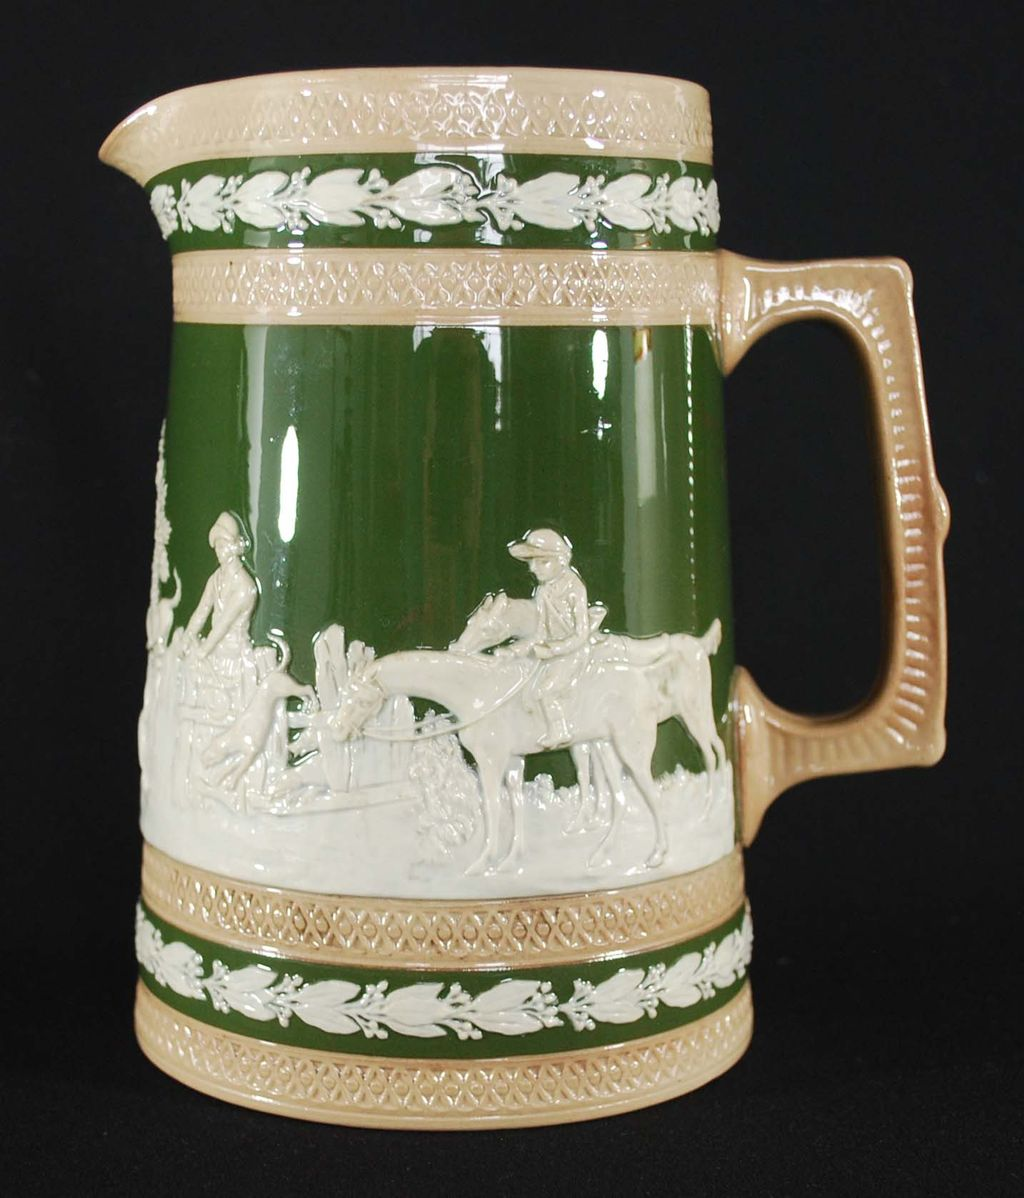 Antique Spode Pitcher, Pottery, late 1800's